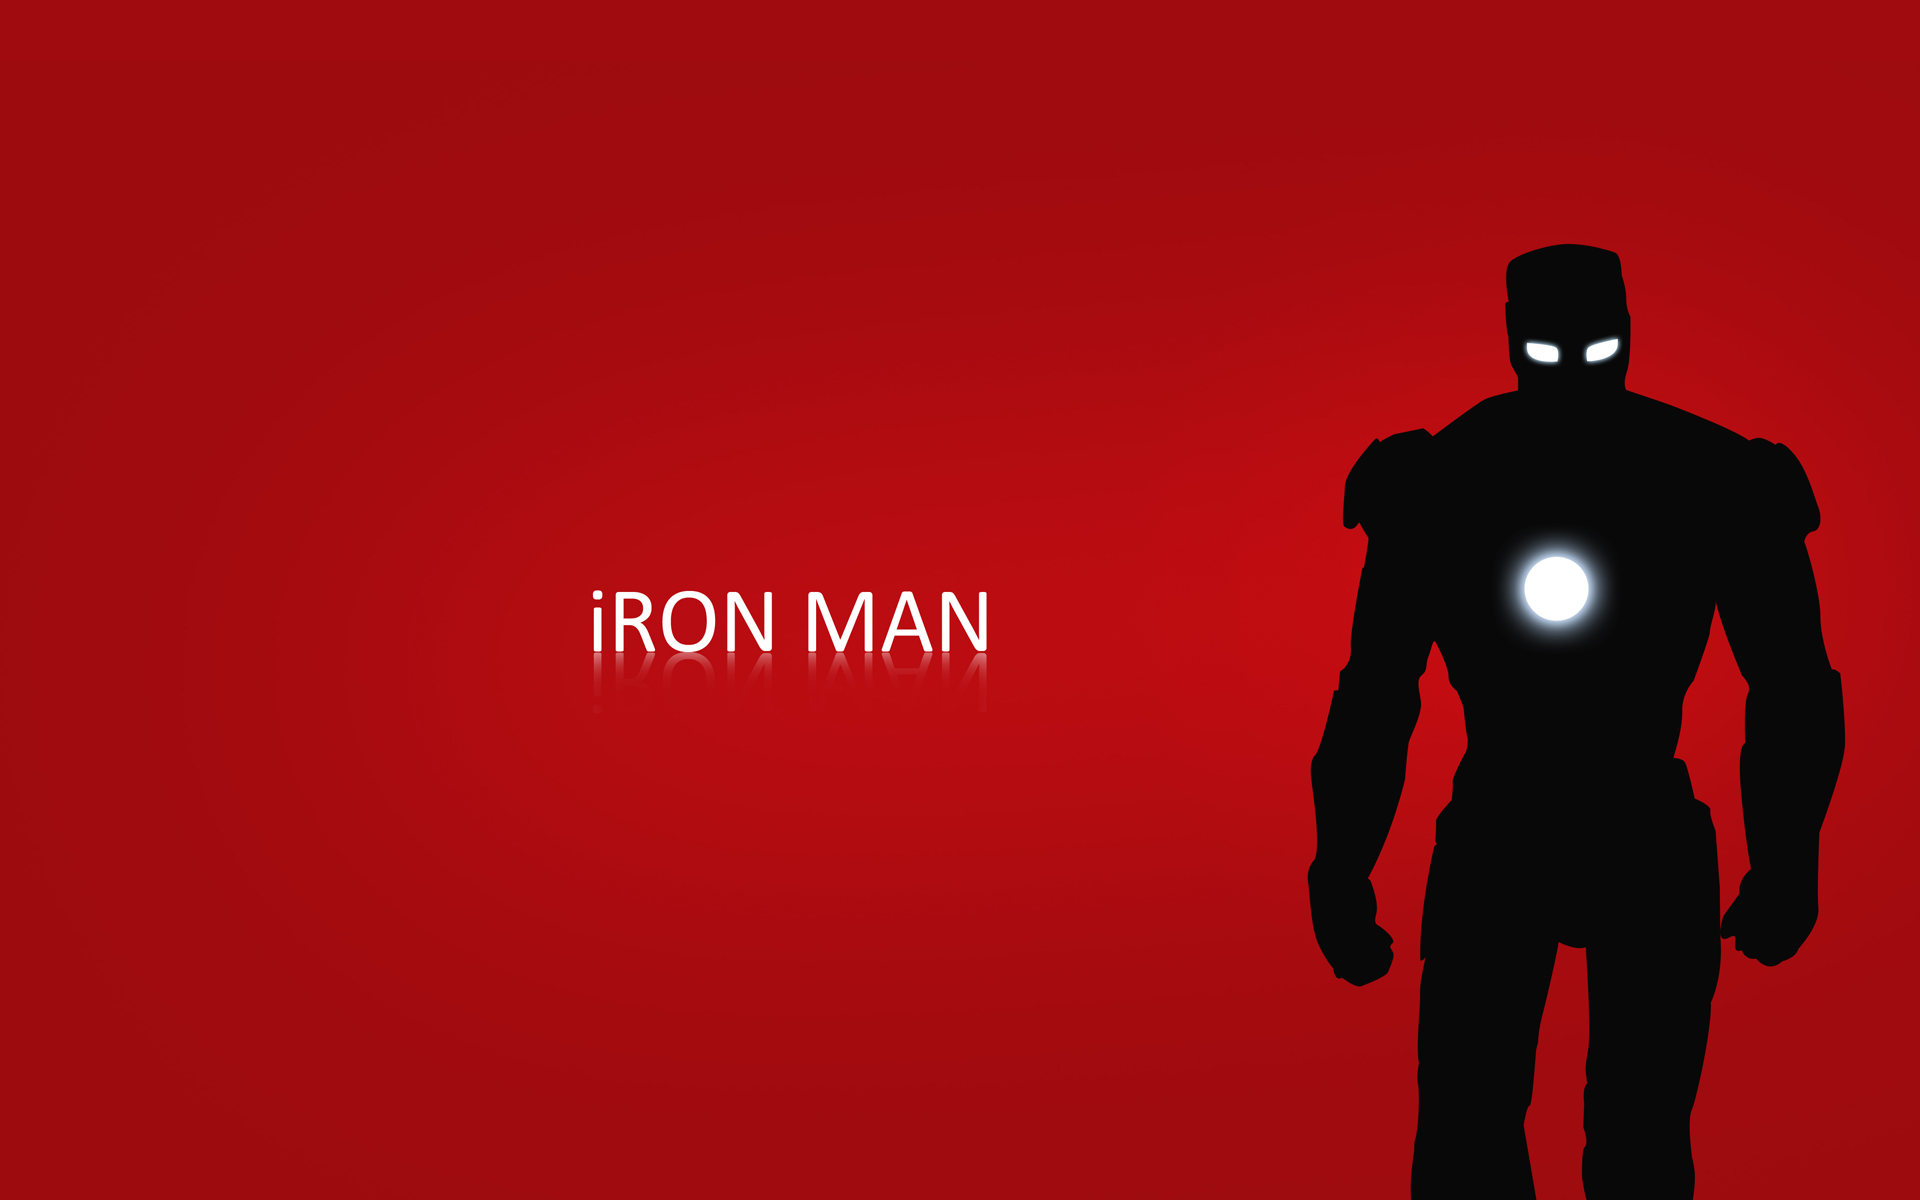 Iron man red silhouette marvel comics wallpaper ...